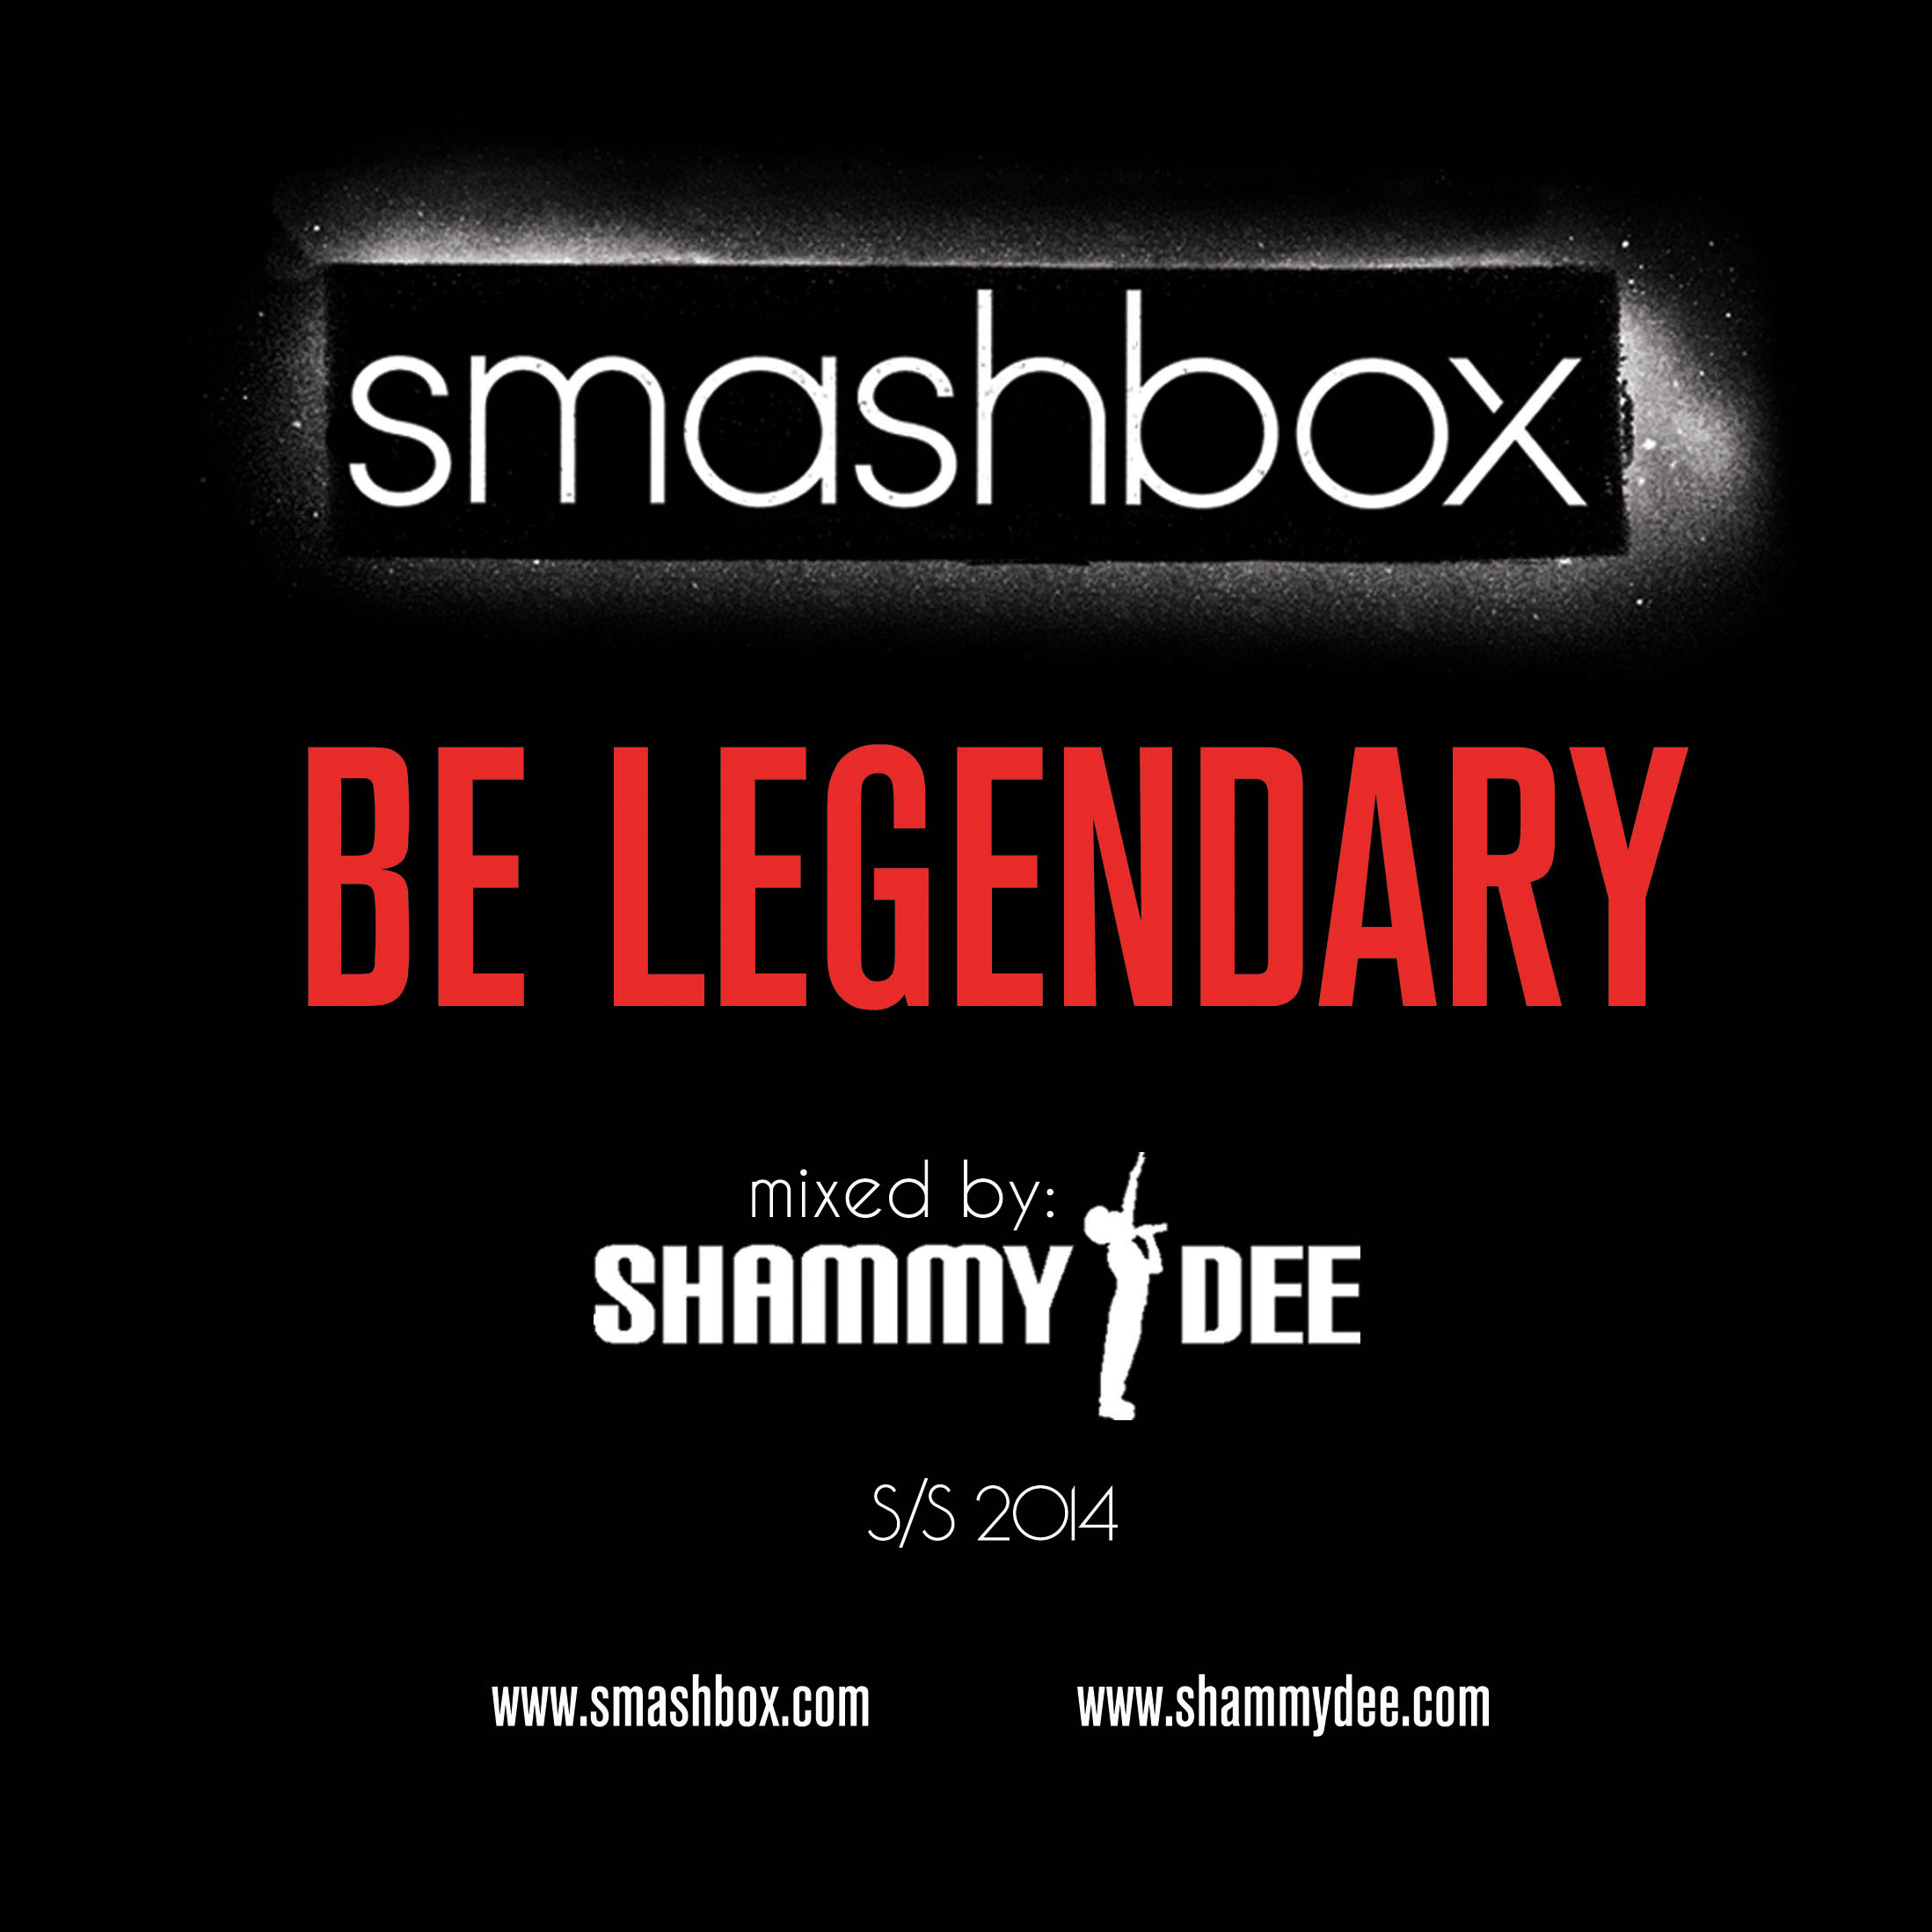 Smashbox & Shammy Dee Presents: Be Legendary Mixxtape